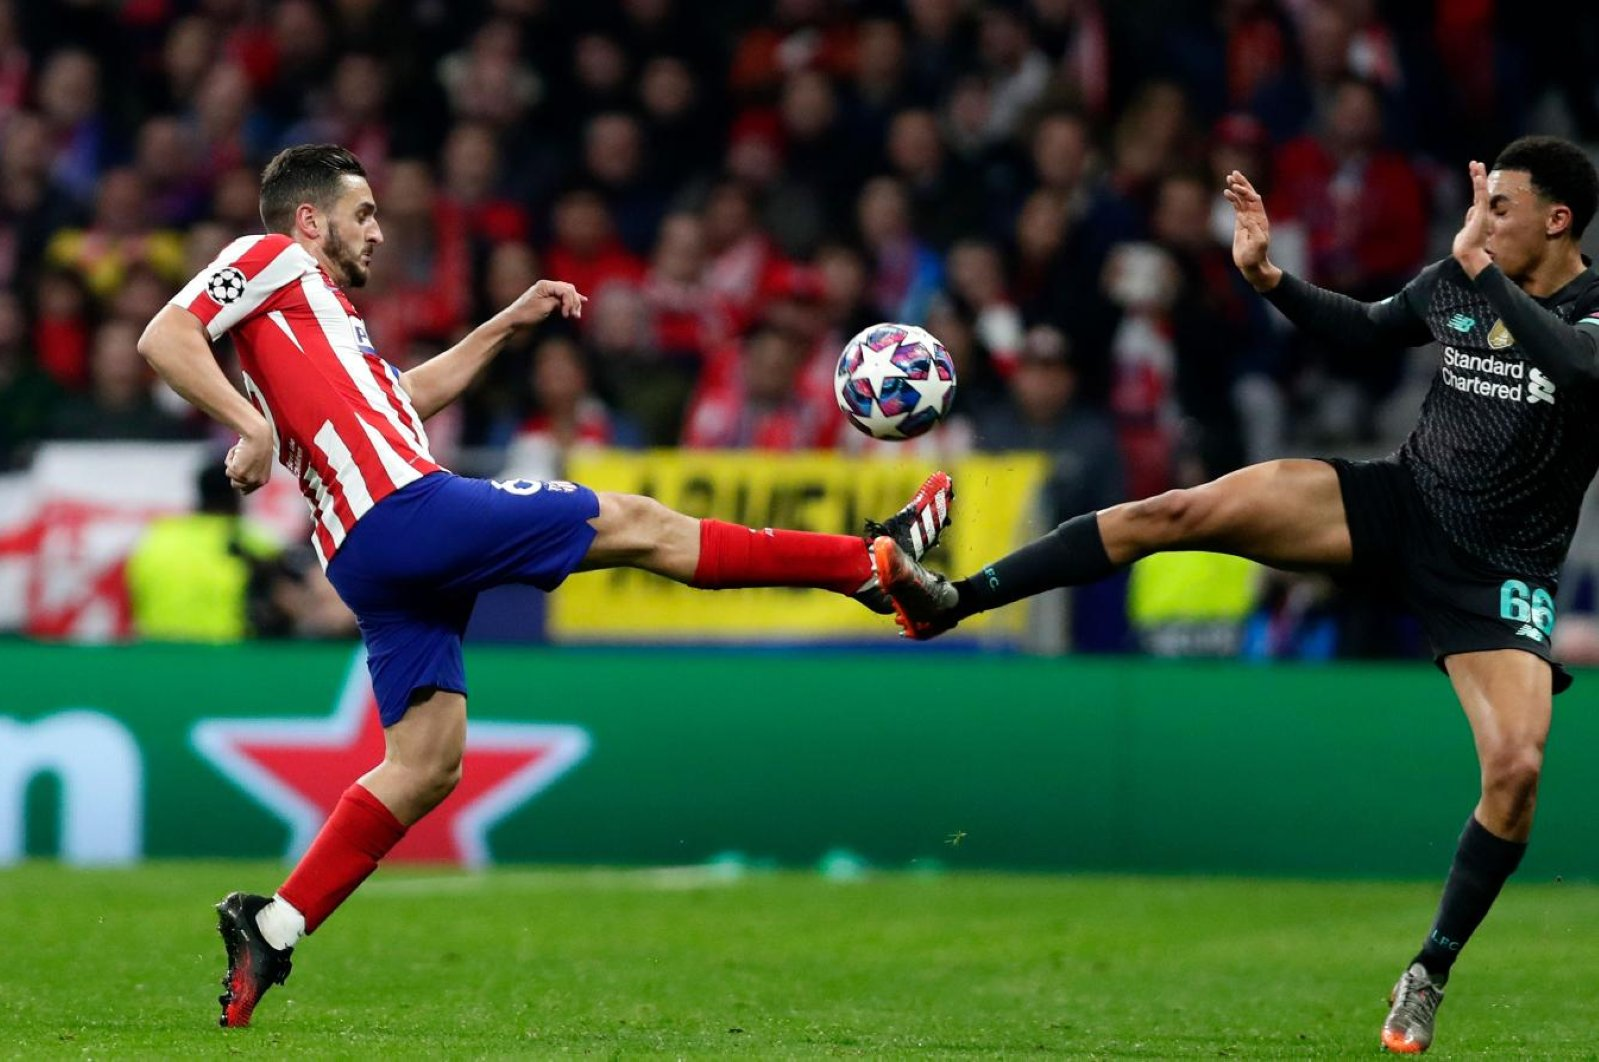 Atletico Madrid's Koke and Liverpool's Alexander-Arnold fight for the ball during a Champions League match in Madrid, Feb. 18, 2020. (AP Photo)